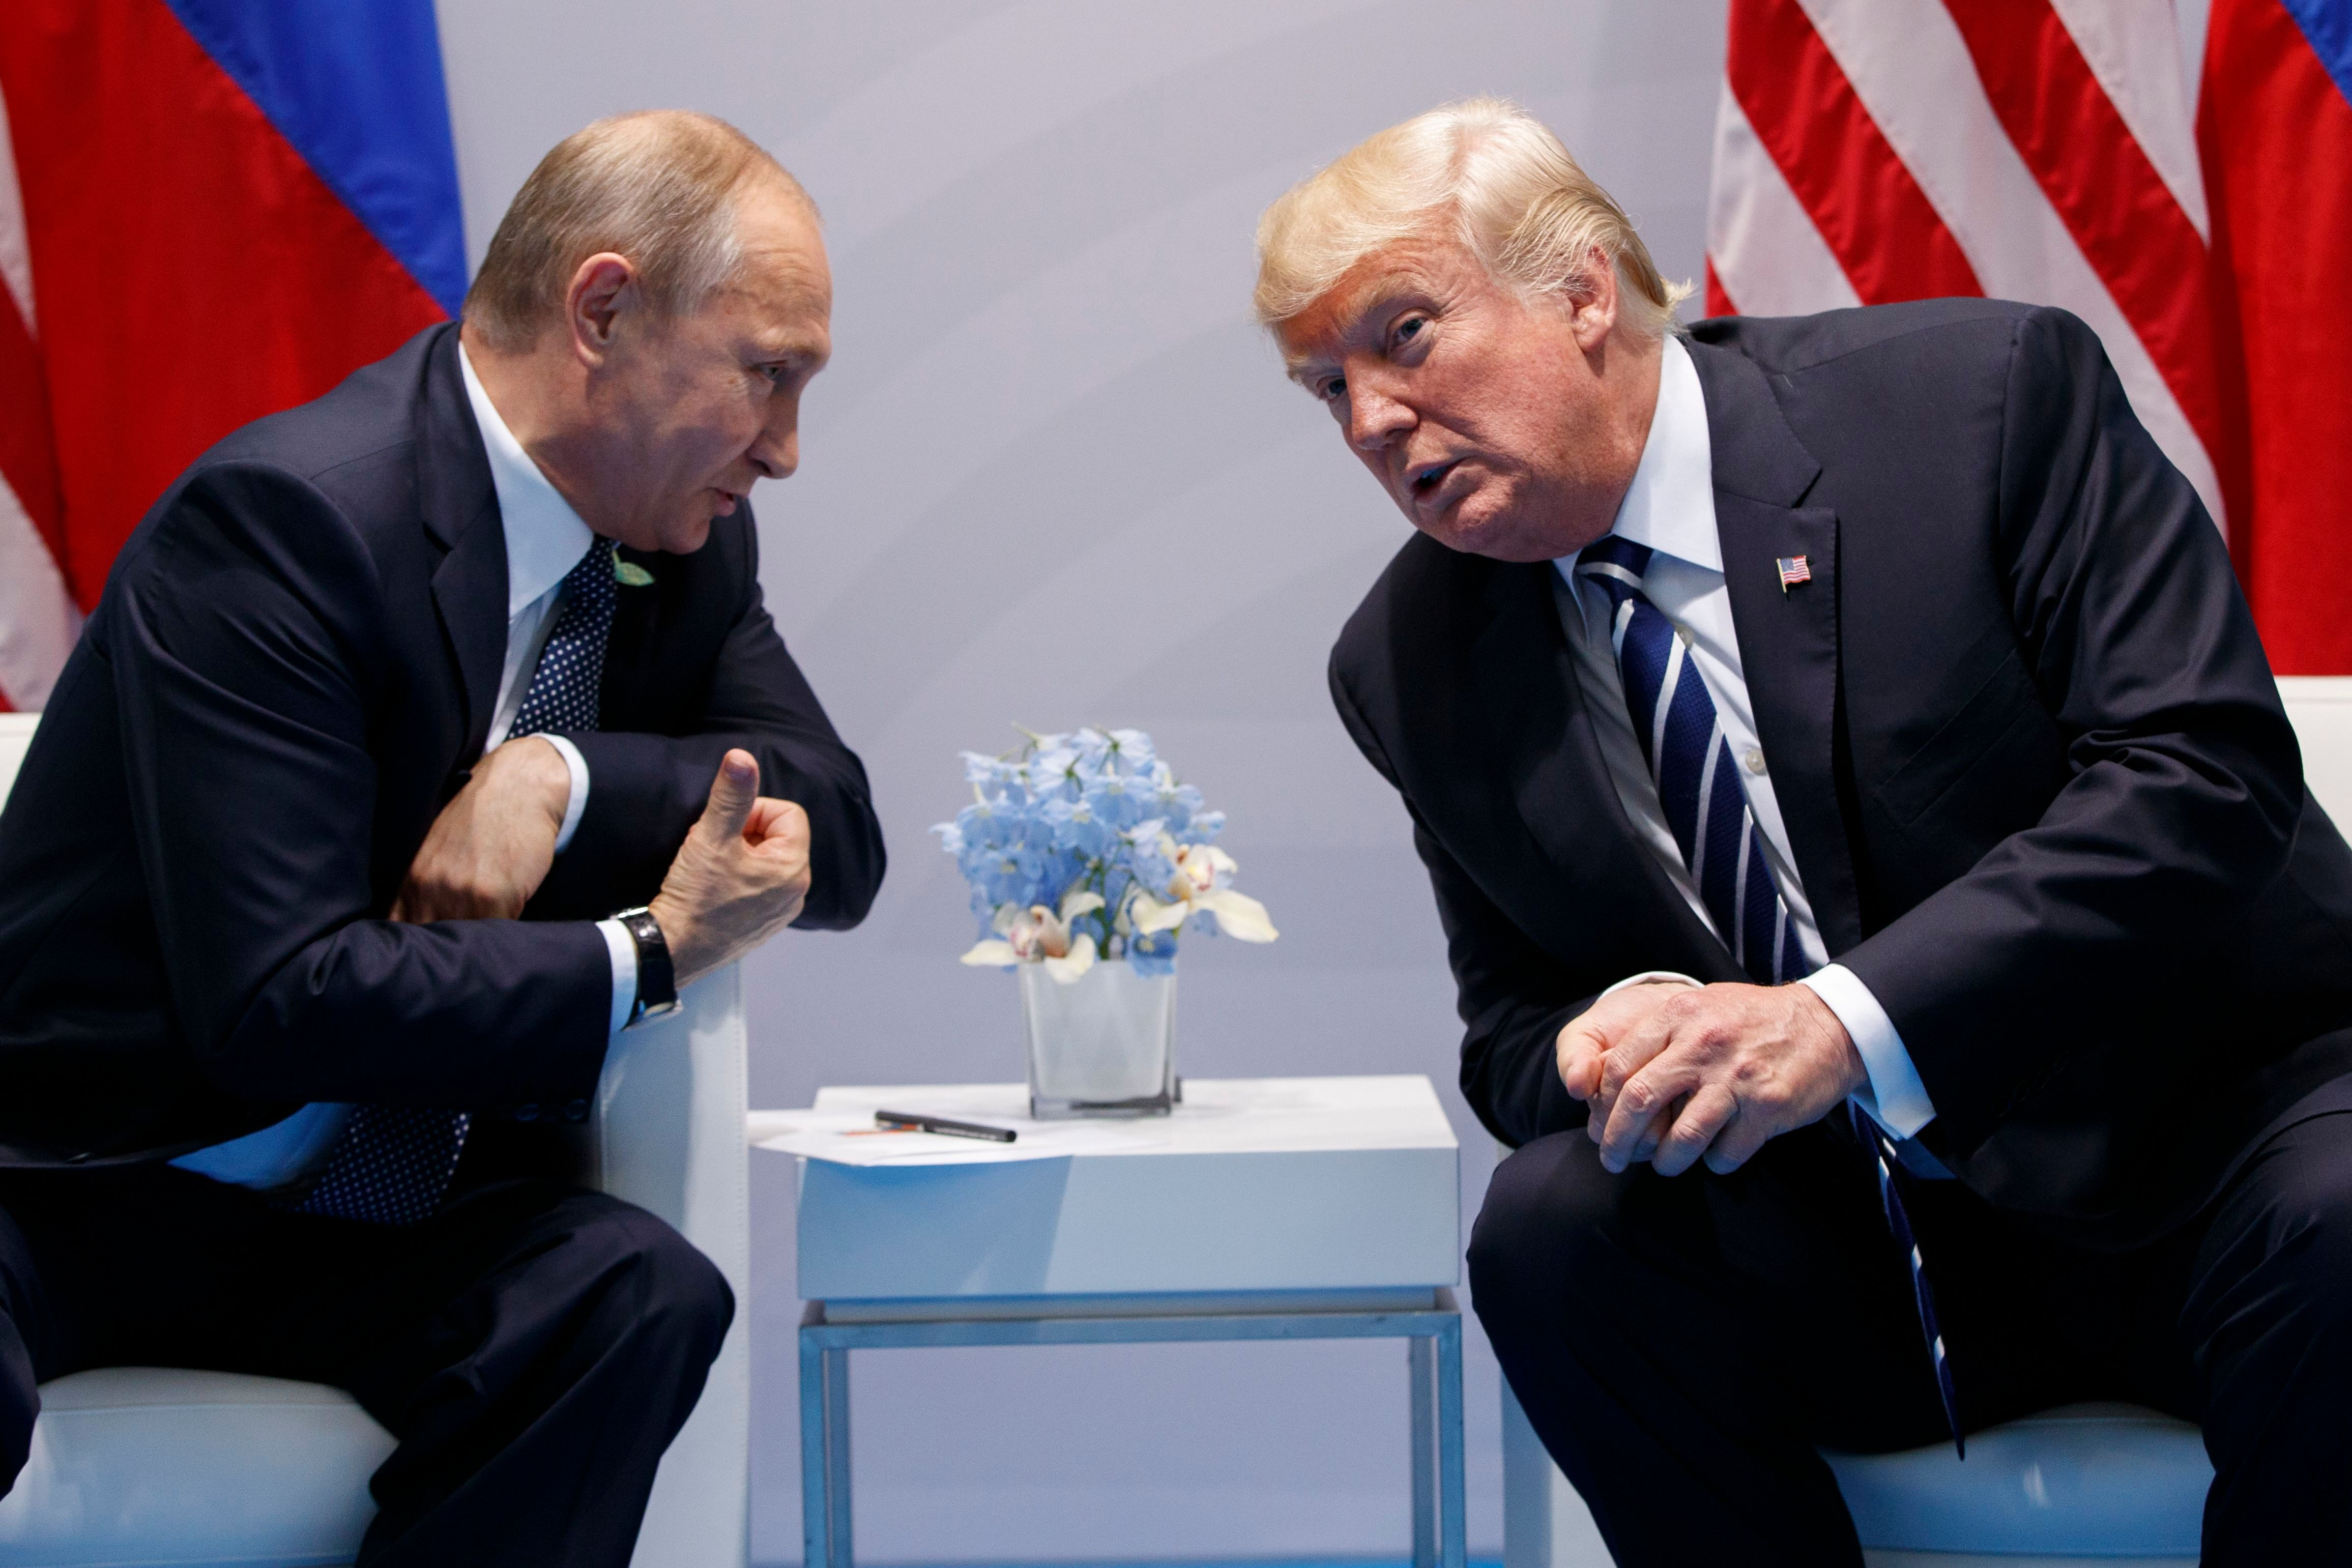 Donald Trump, Vladimir Putin President Donald Trump speaks during a meeting with Russian President Vladimir Putin at the G20 Summit at the G20 Summit, in Hamburg, Germany on July 7, 2017.